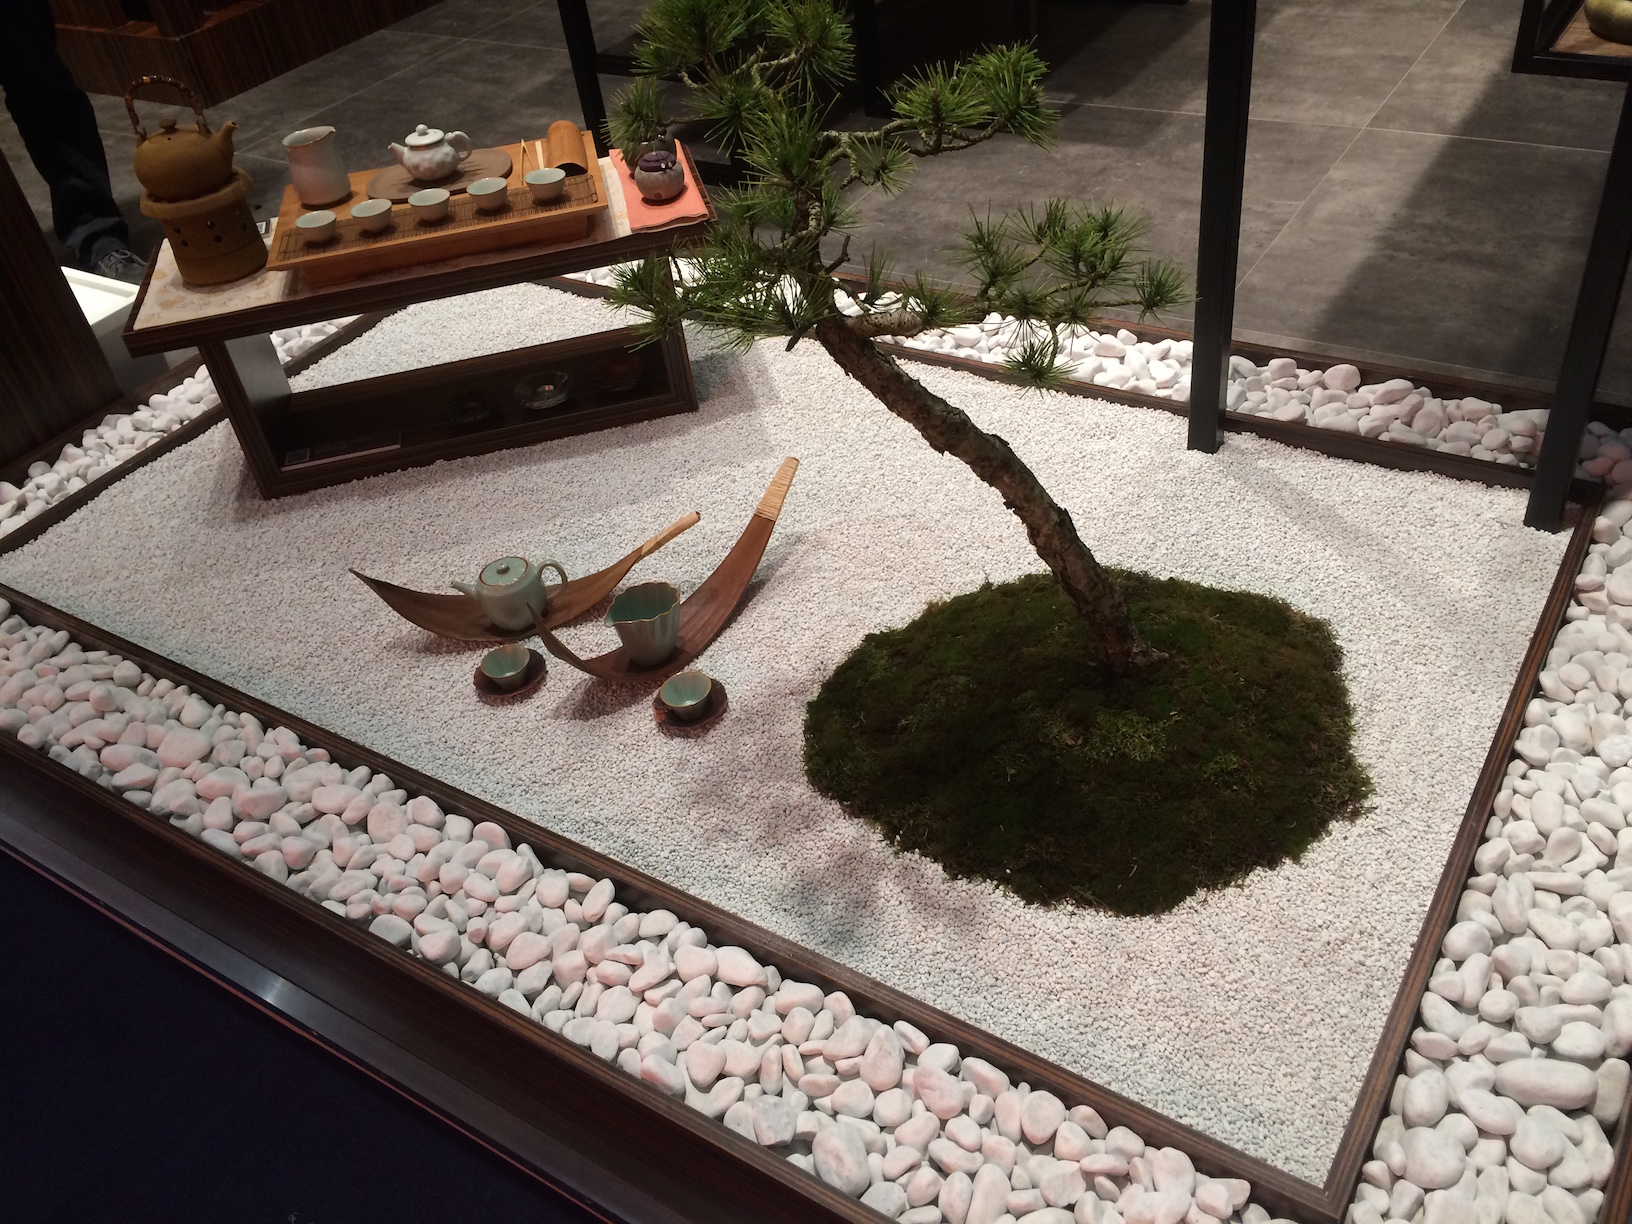 On y tait le salon des arts de la table de francfort for Jardin japonais miniature